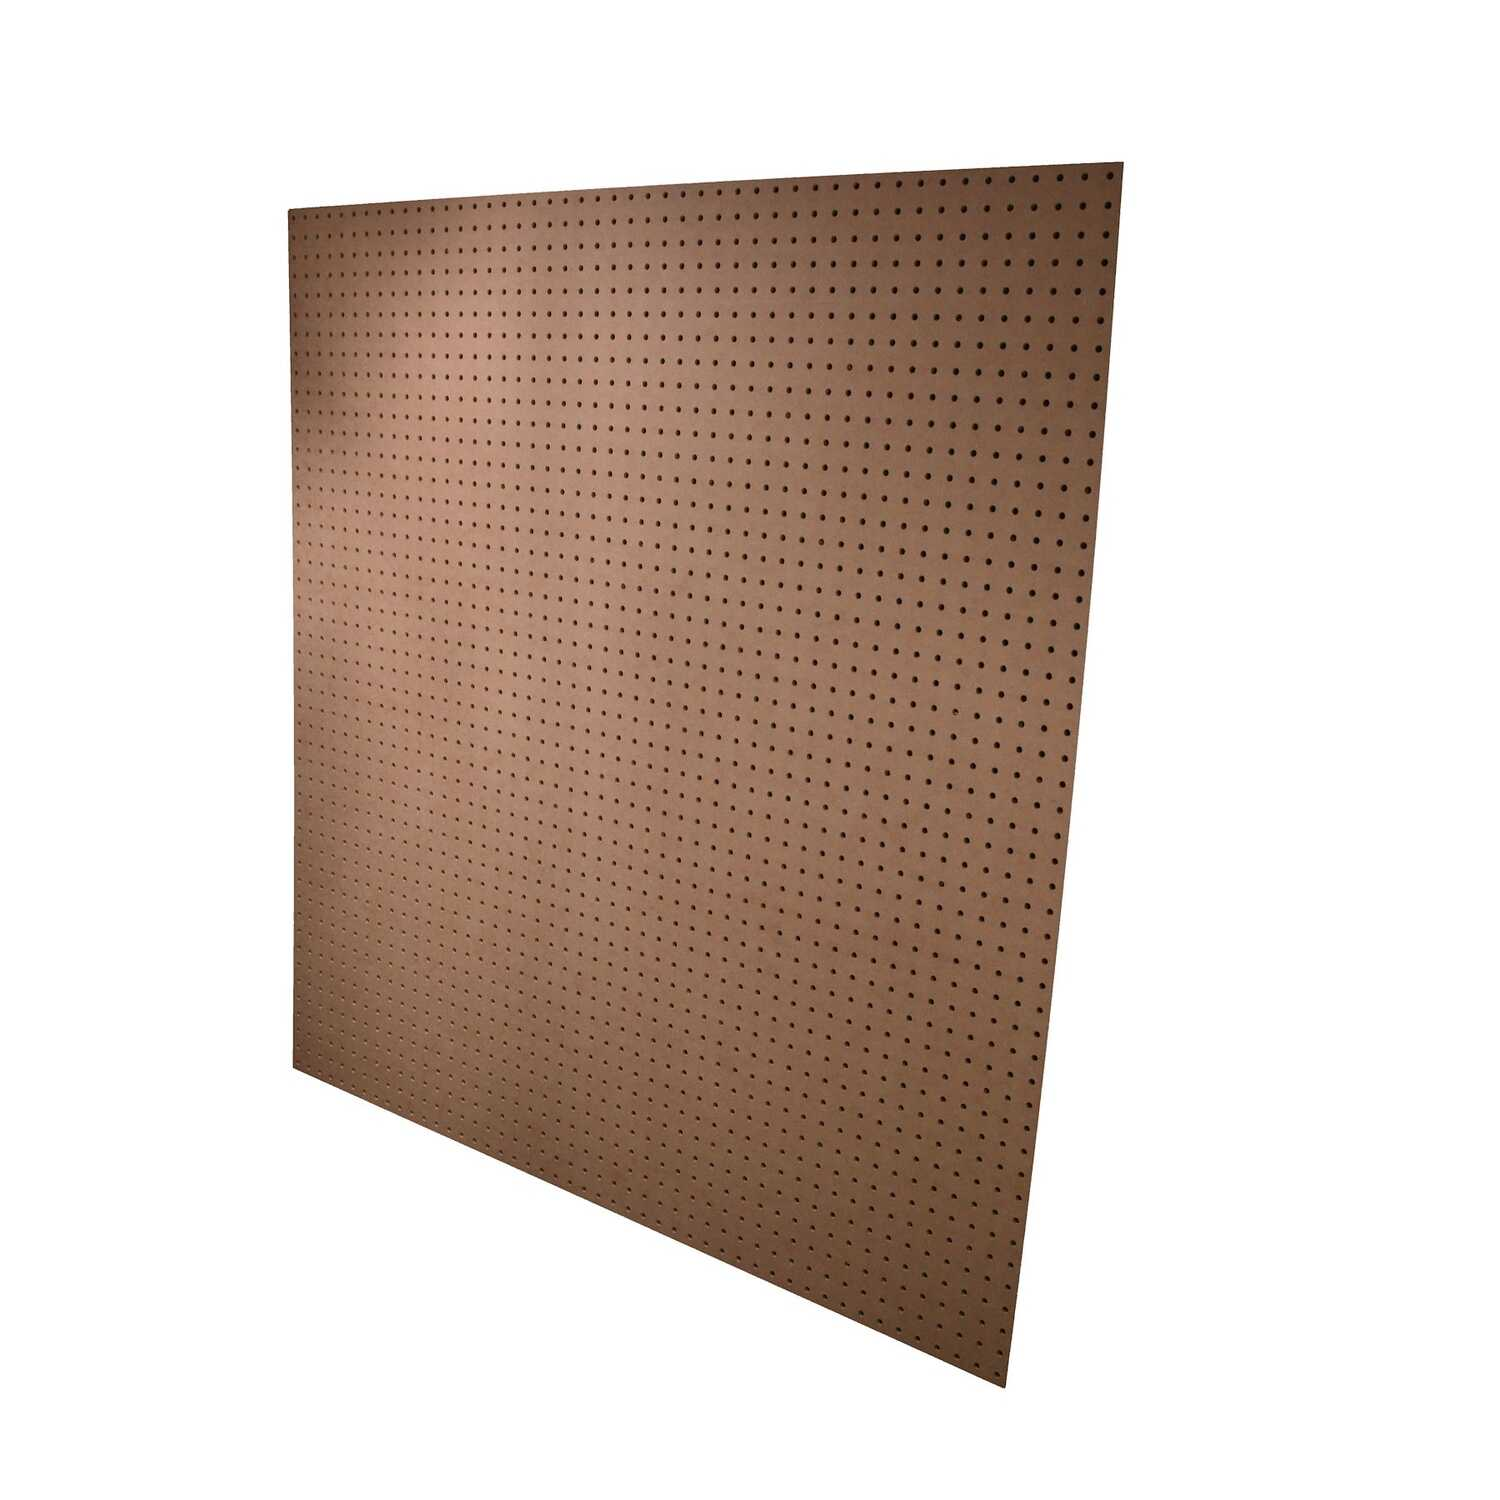 American Wood Moulding  4 ft. W x 4 ft. L x 3/16 in.  Medium Fiberboard (MDF)  Peg Board